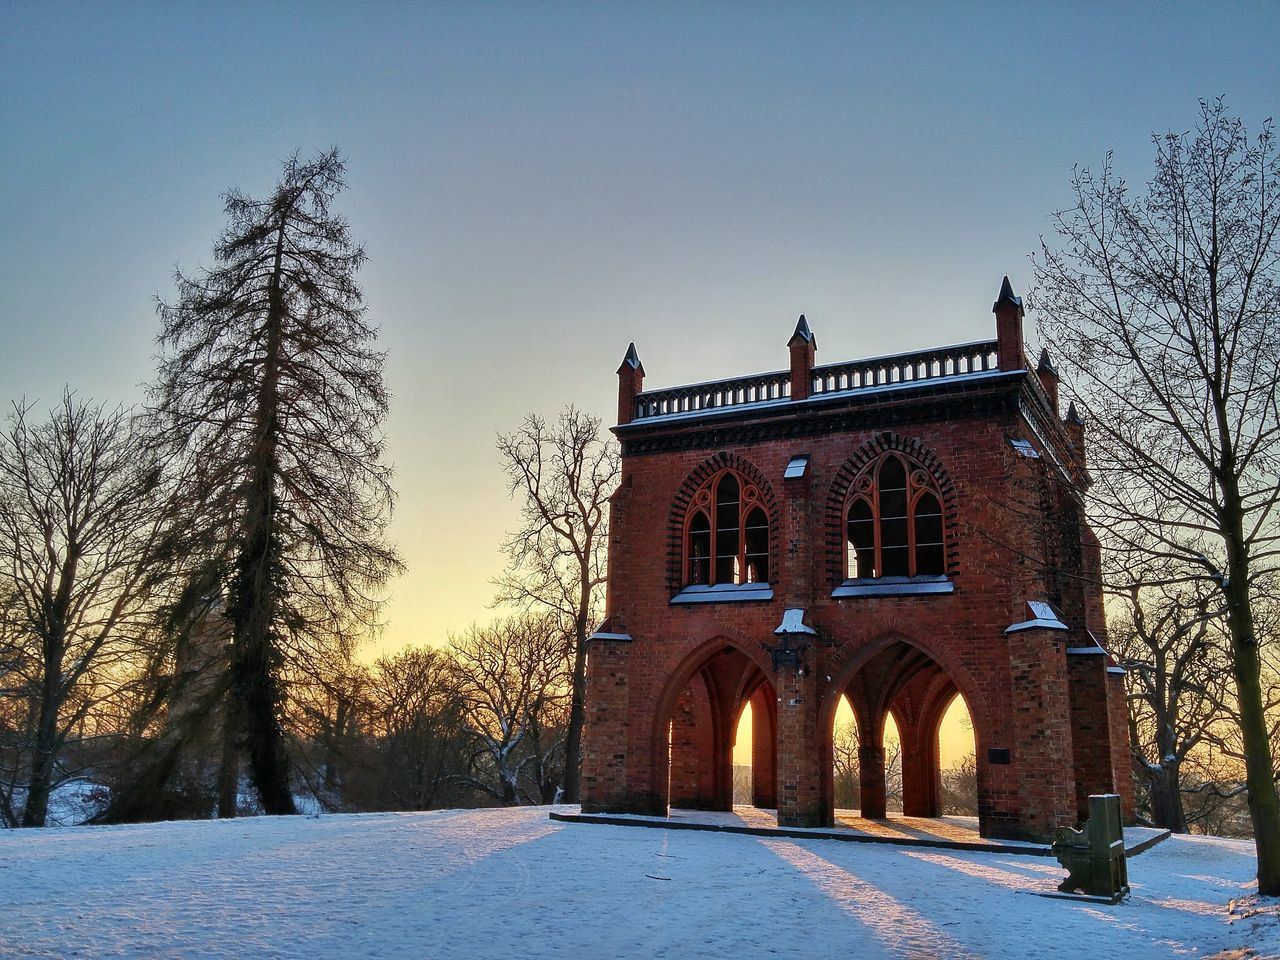 Architecture Babelsberg Babelsberger Park Built Structure Day Gerichtslaube Historical Building No People Outdoors Potsdam Shadows & Lights Sightseeing Sky Snow Snowing Sunset Sunsetlovers Tourist Attraction  Tree Winter